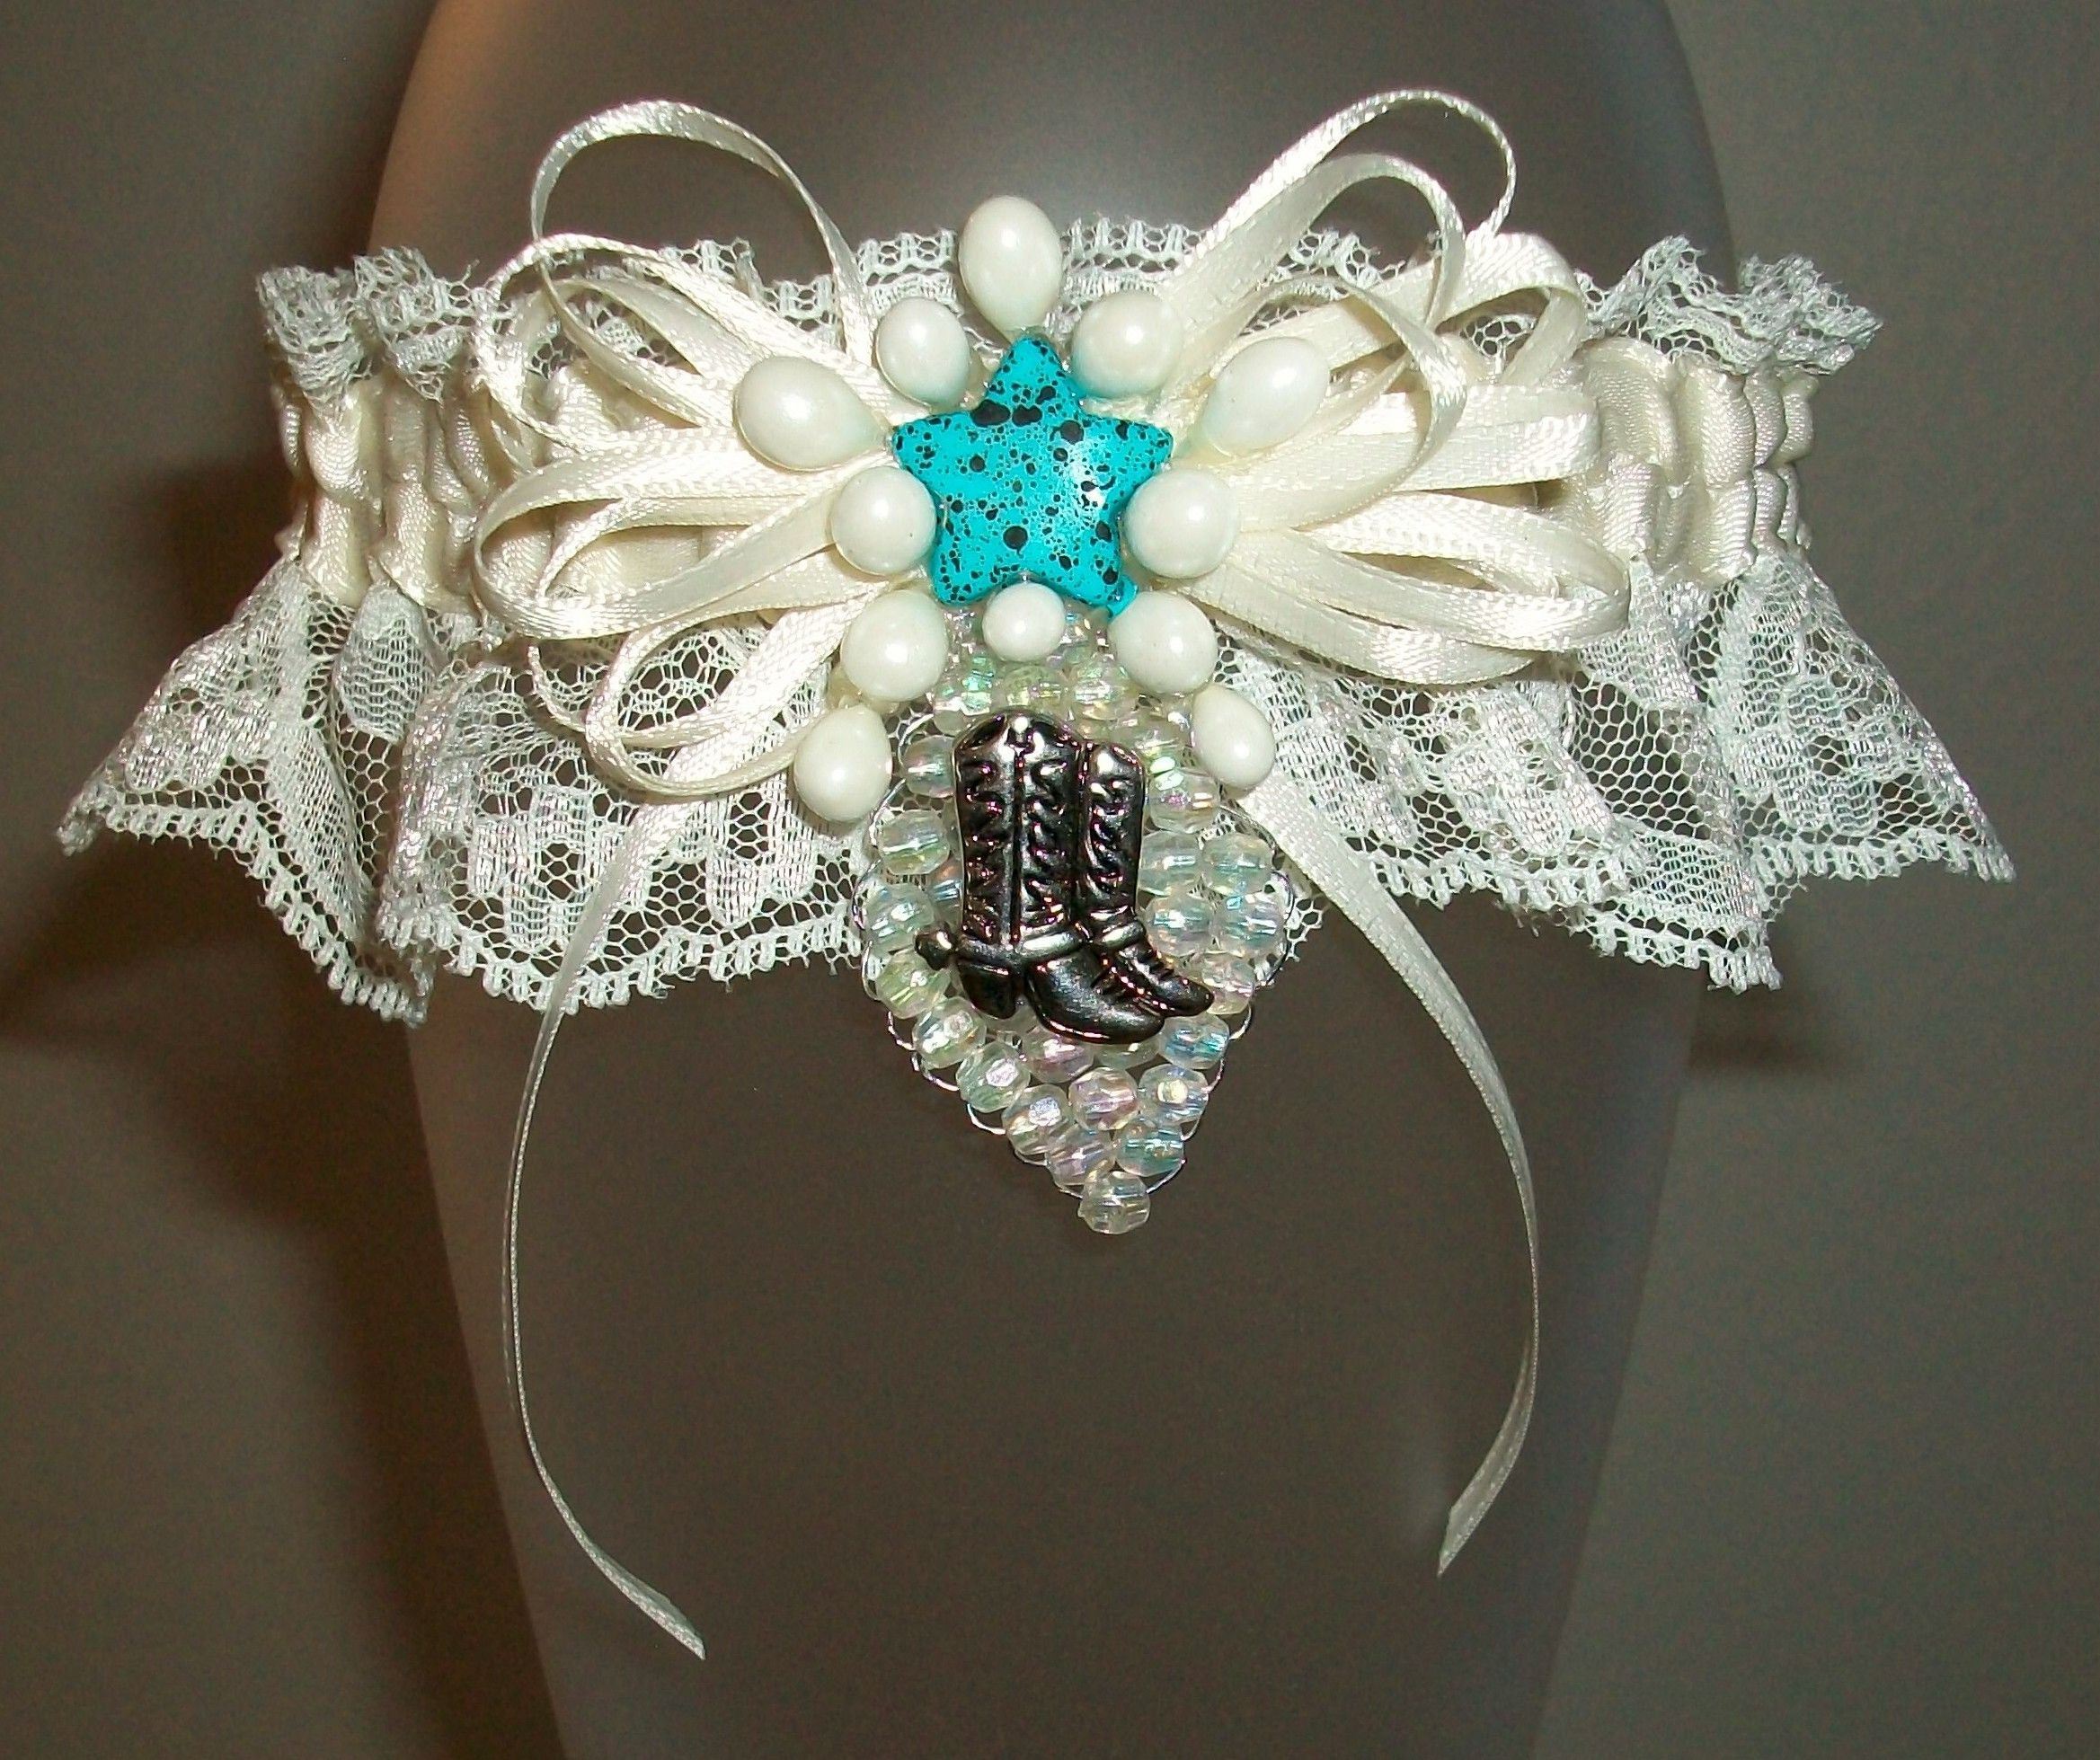 Country Wedding Garters: Country With A Touch Of Blue Ivory Garter, Wedding Garter